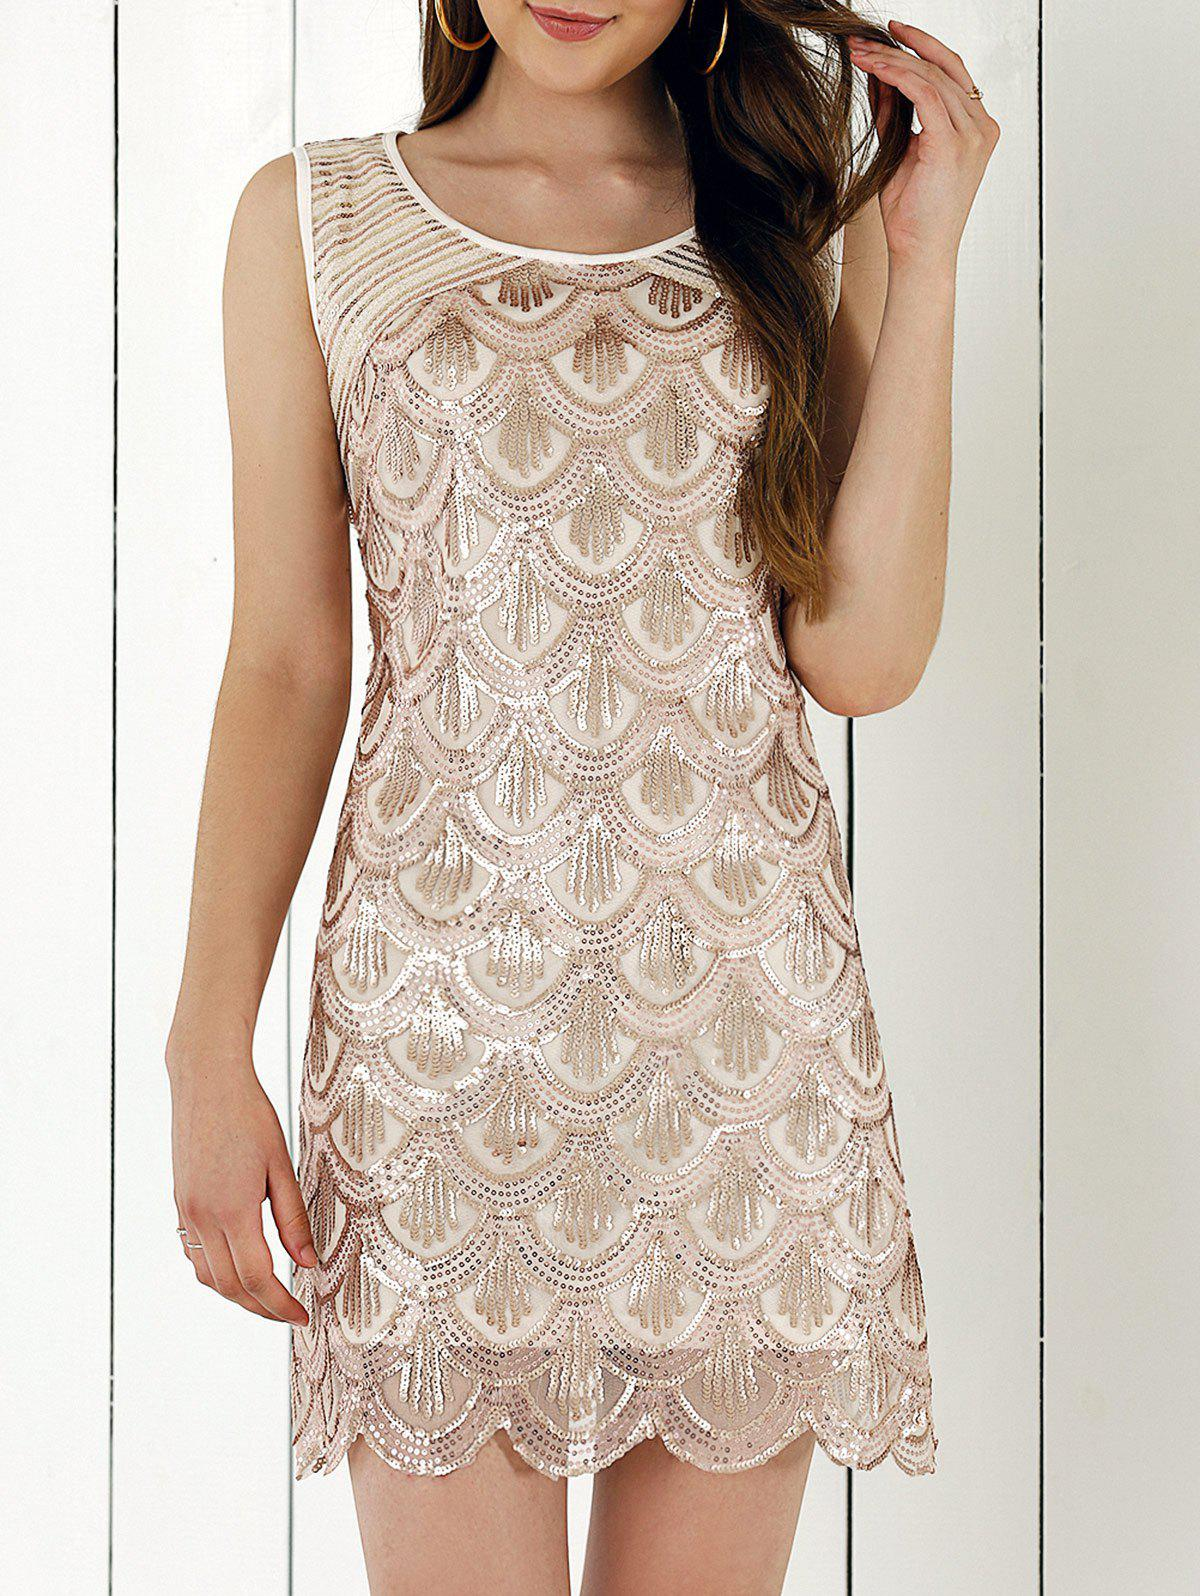 Fish Scale Pattern Sequined Scalloped Edge Dress - APRICOT S